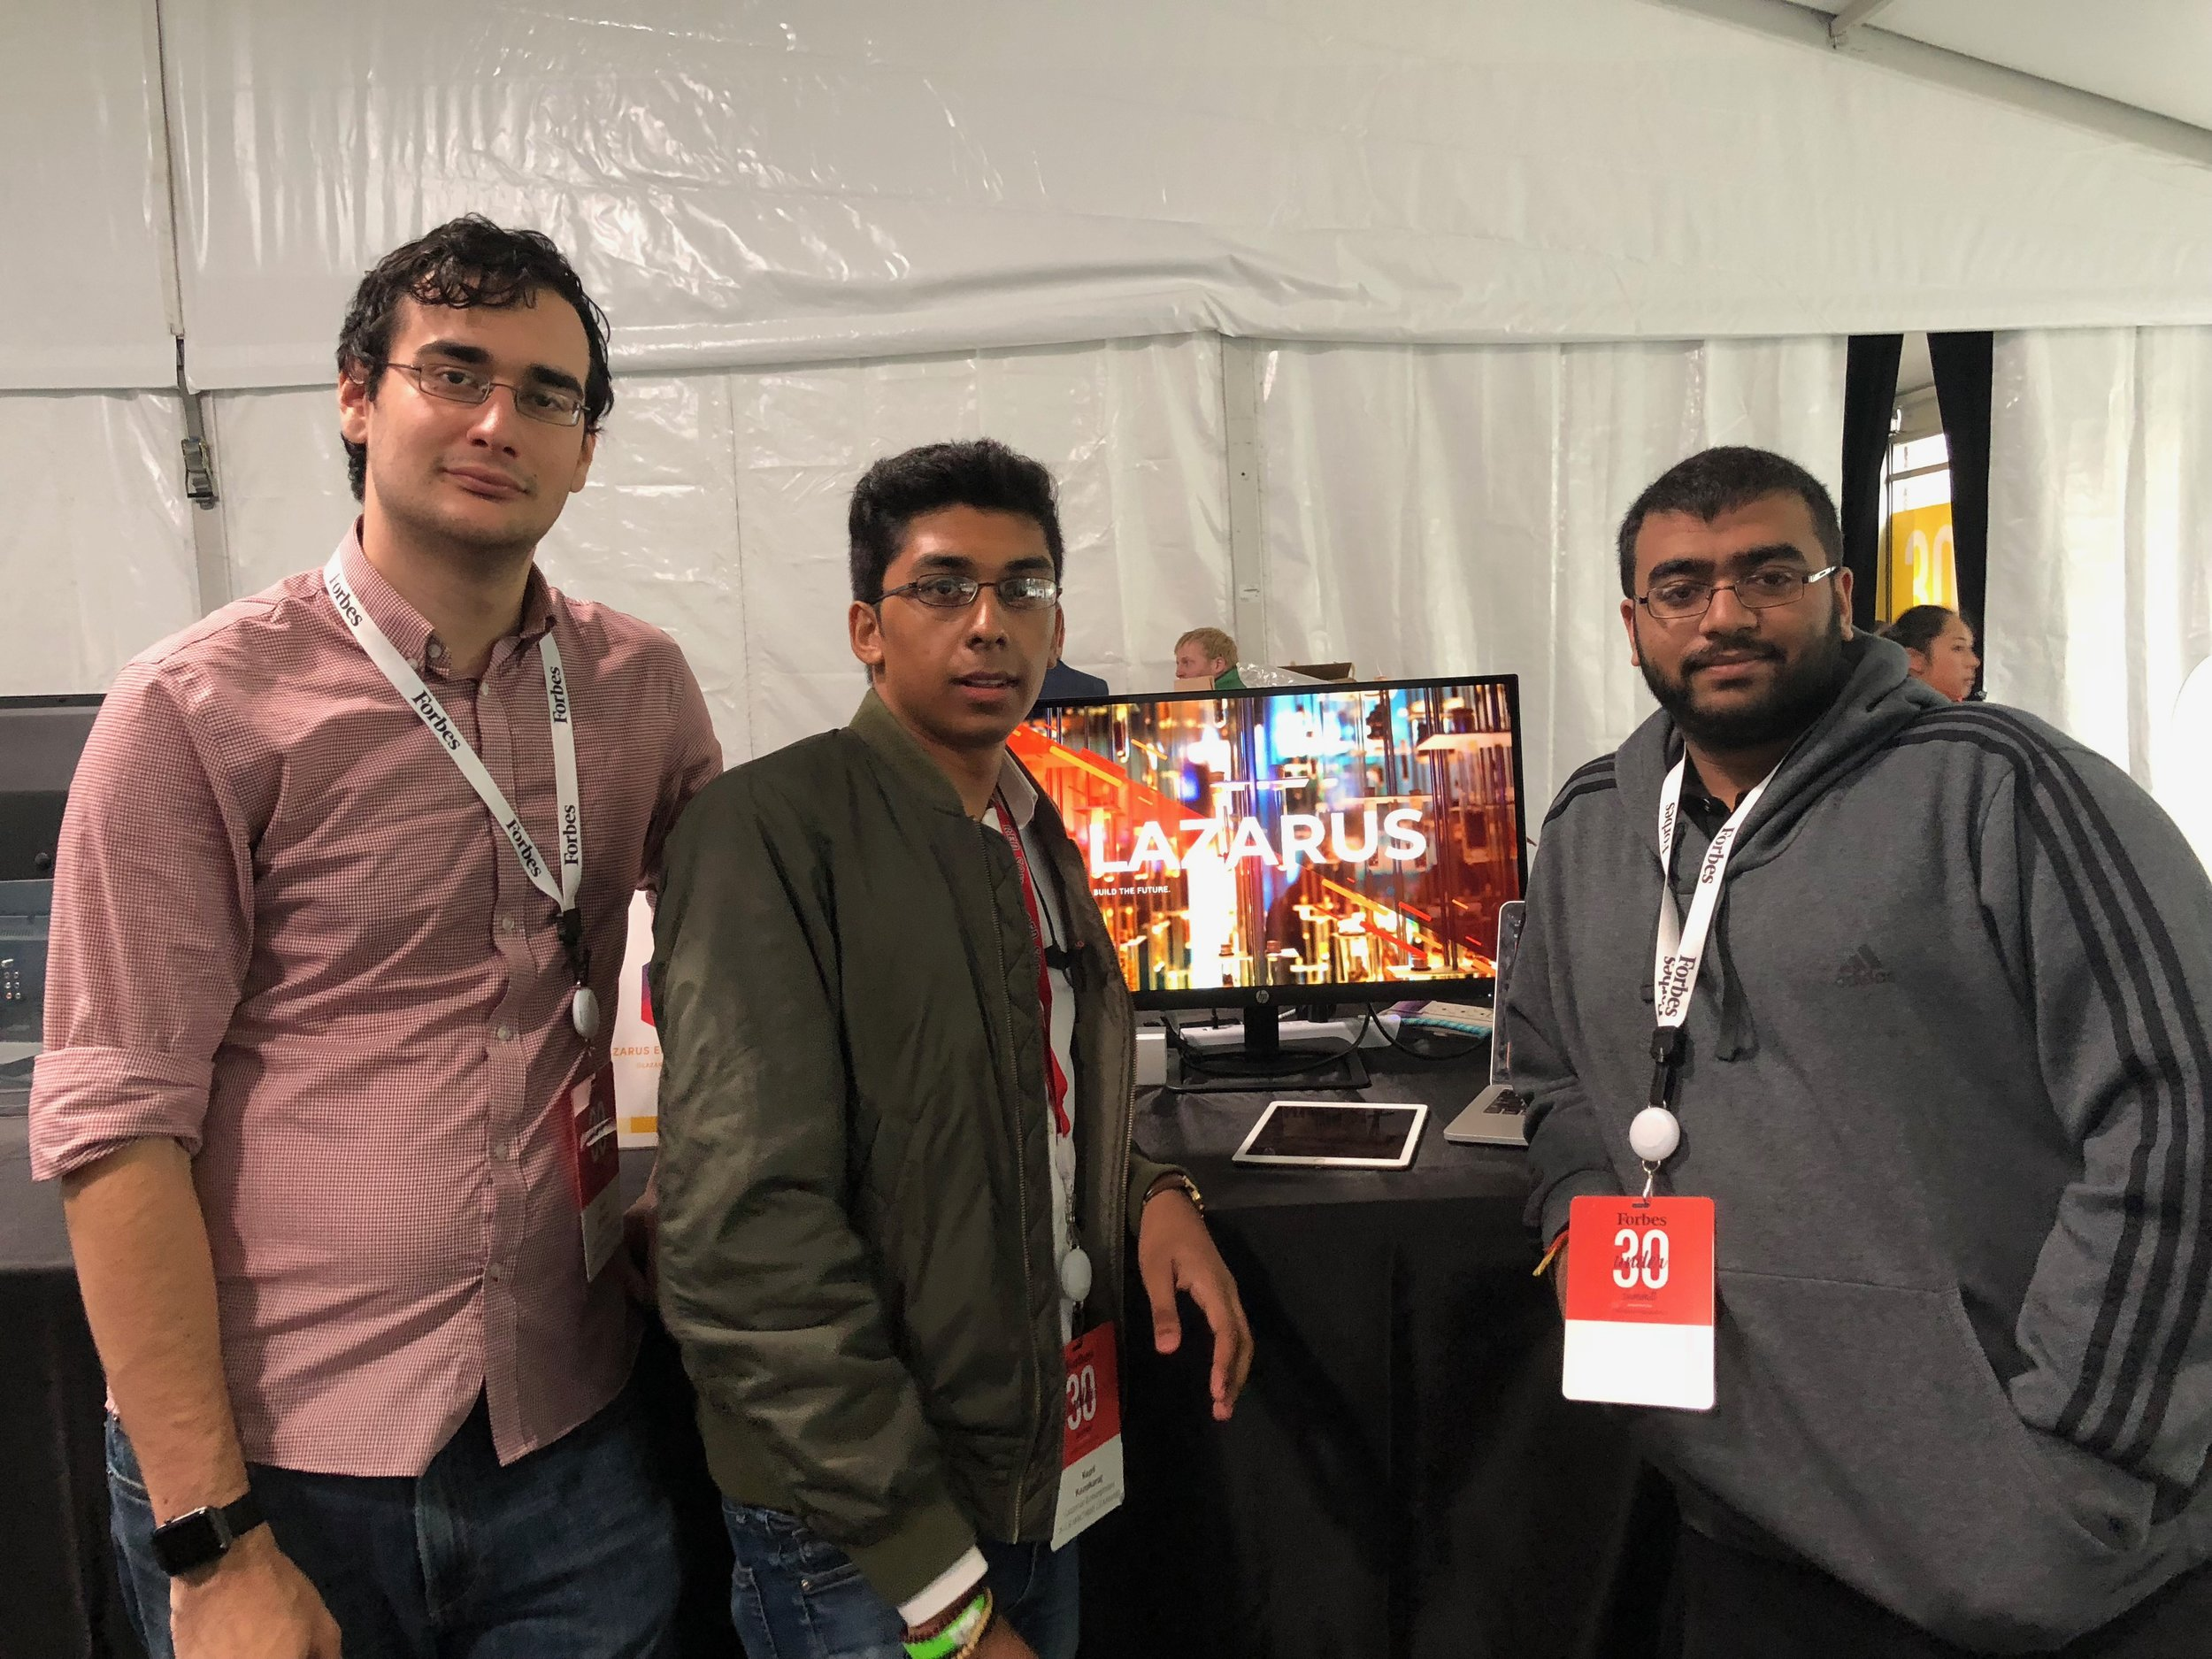 The Lazarus Founding Team at the 2018 Forbes 30 Under 30 Summit. (From left: Ariel Elizarov, Kapil Kanakaraj, and Anish Patel)